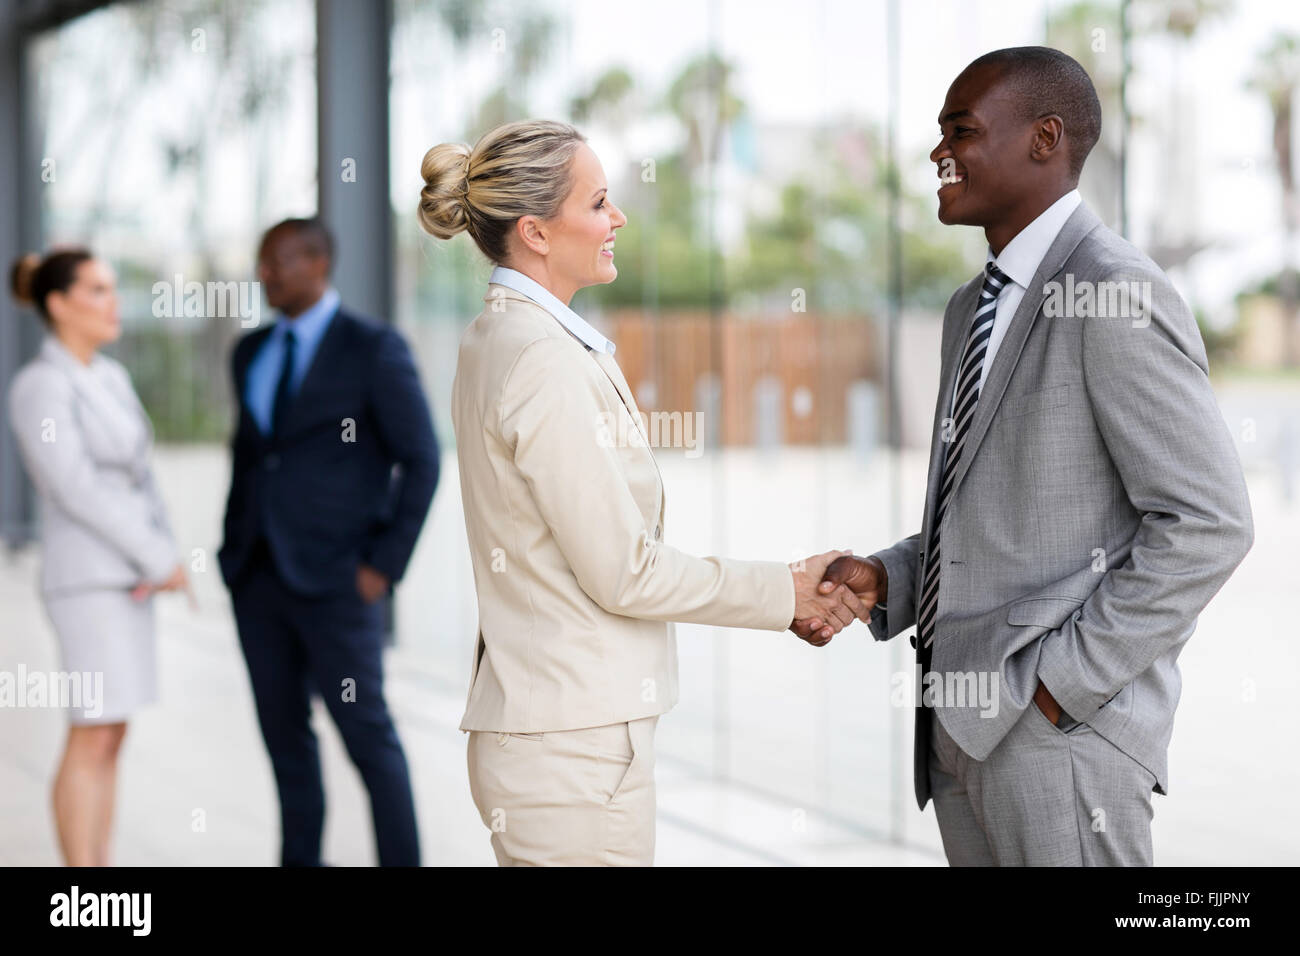 professional business people handshaking in modern office - Stock Image